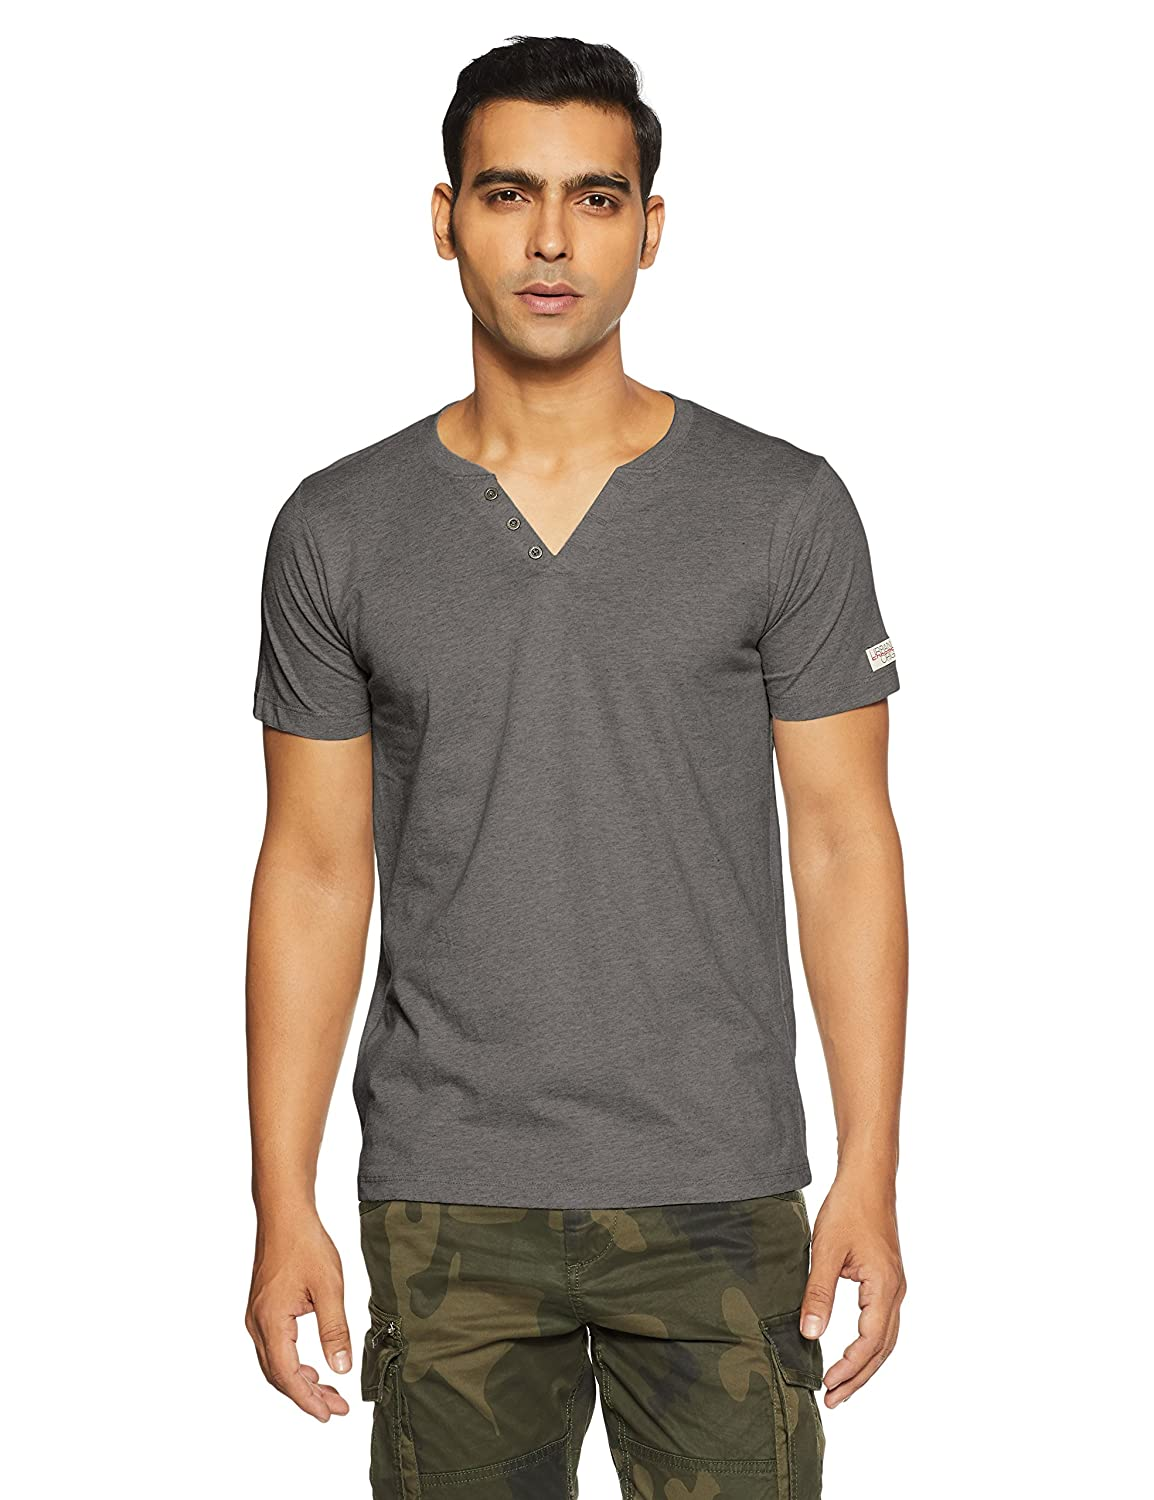 Chromozome Men's Cotton T-Shirt